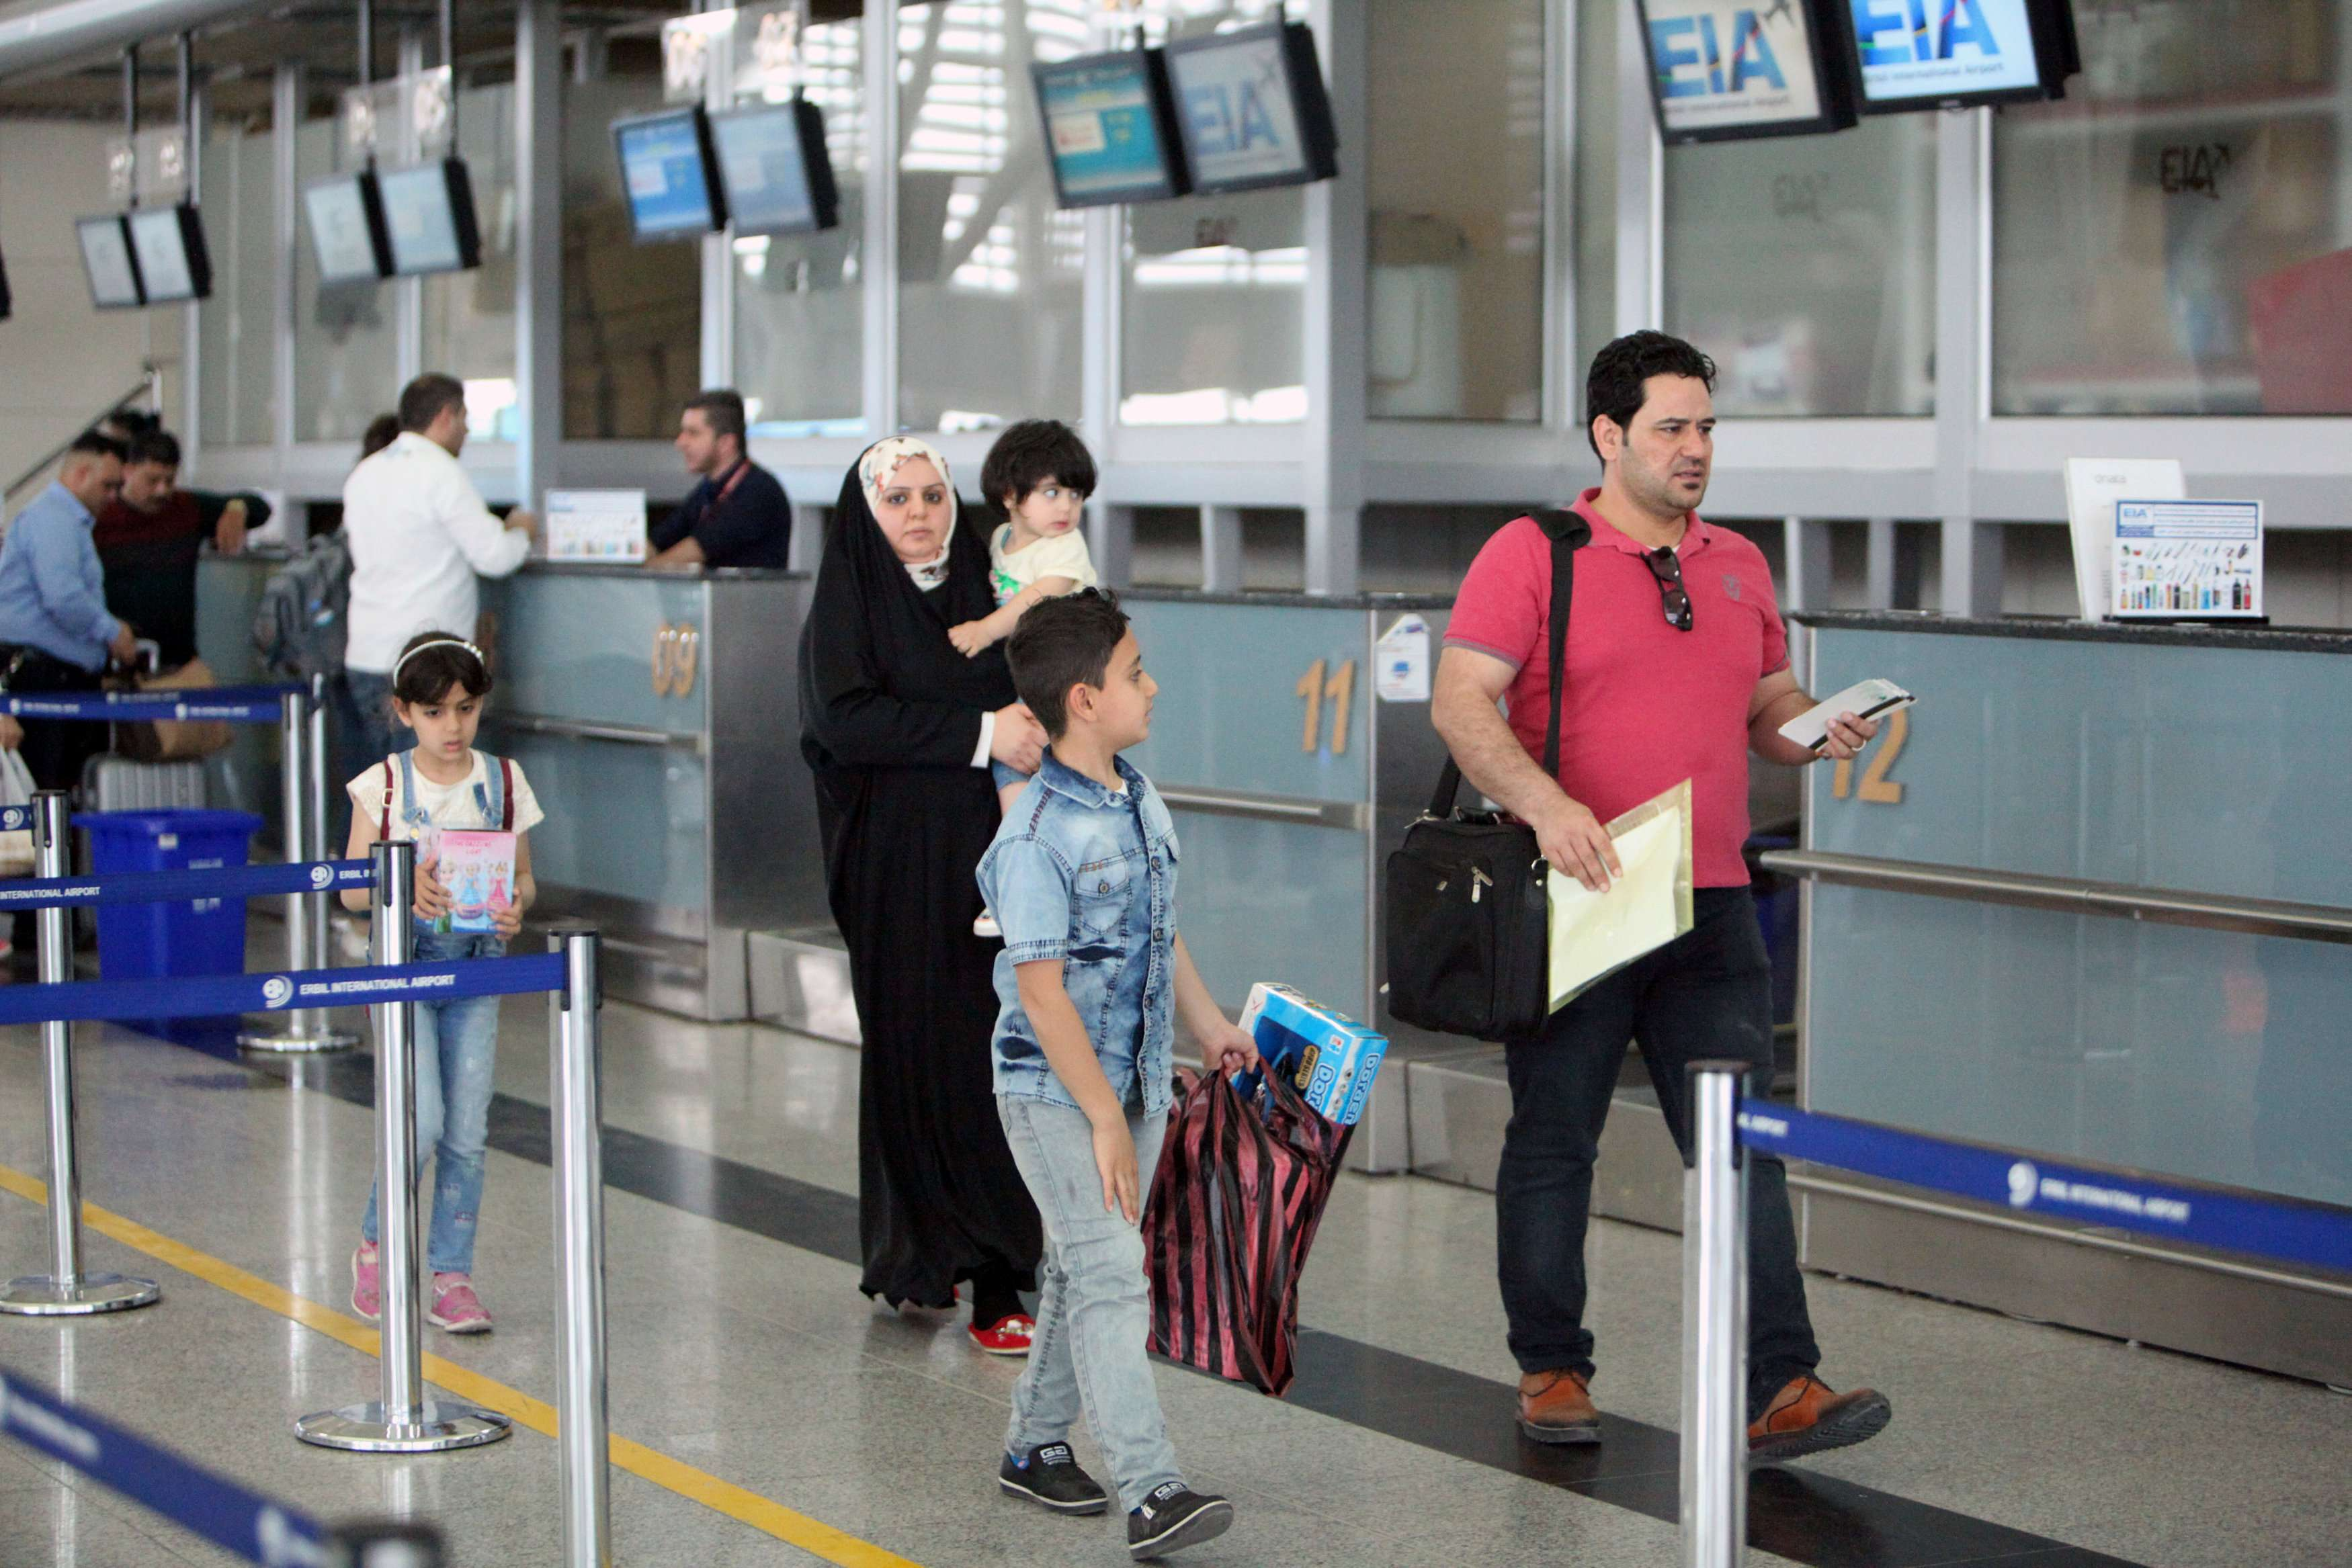 Passengers are seen at Erbil International Airport, on March 15. (Reuters)